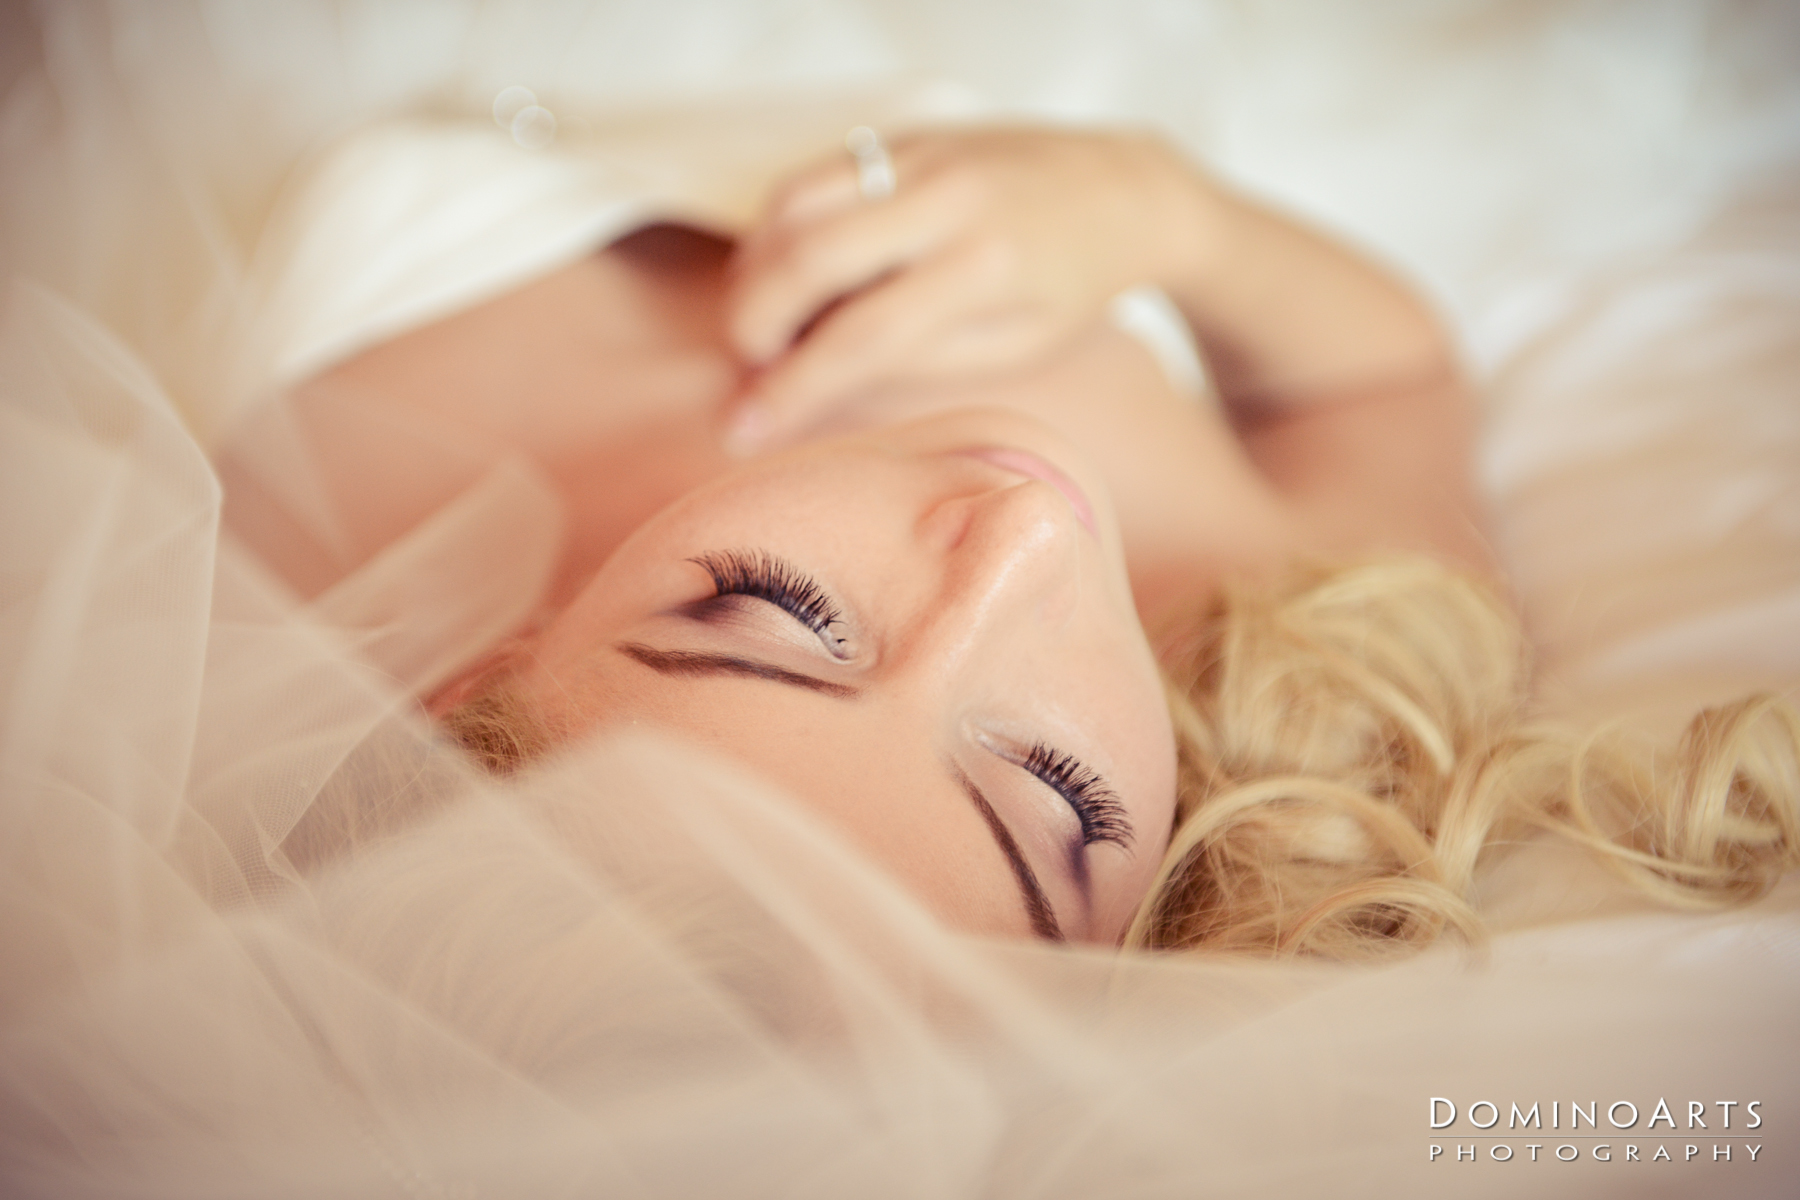 Photography // Domino Arts Photography